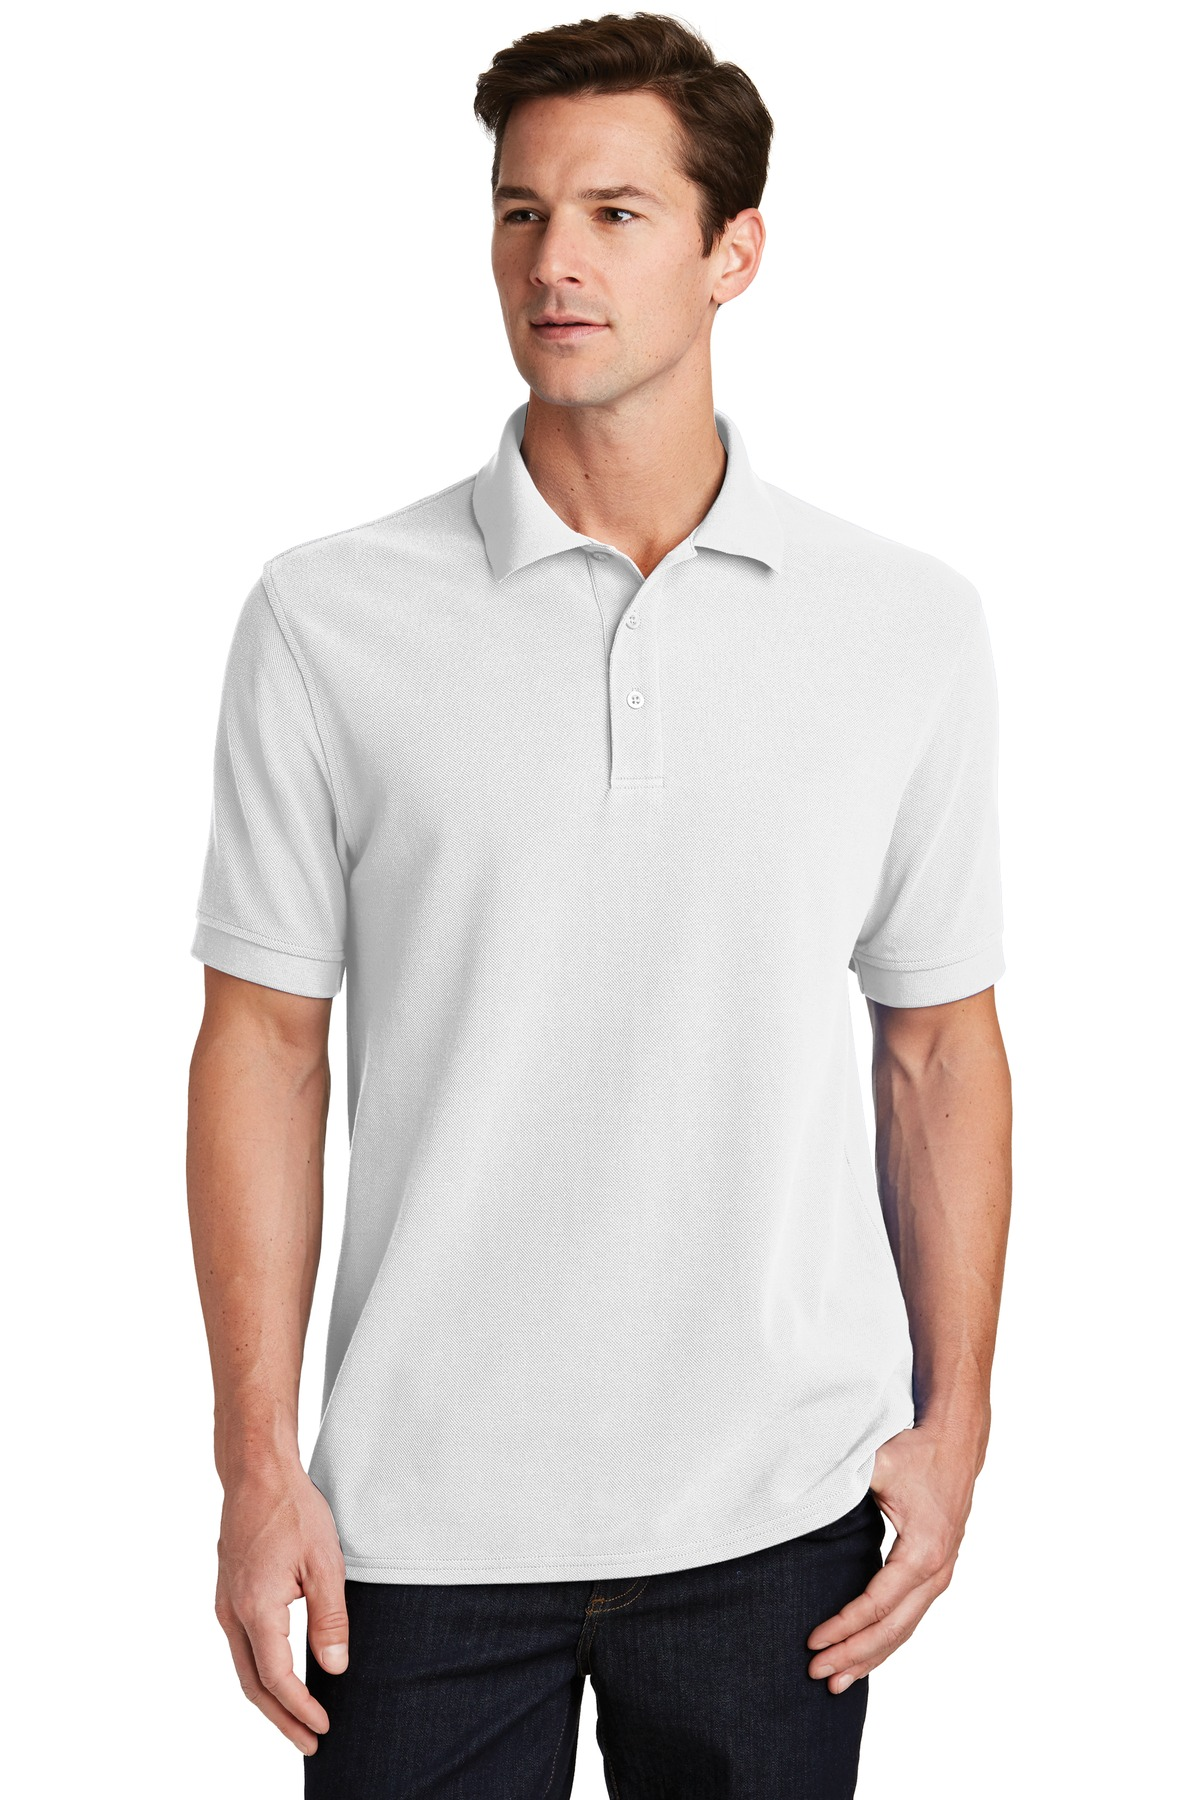 Port & Company ®  Combed Ring Spun Pique Polo. KP1500 - White